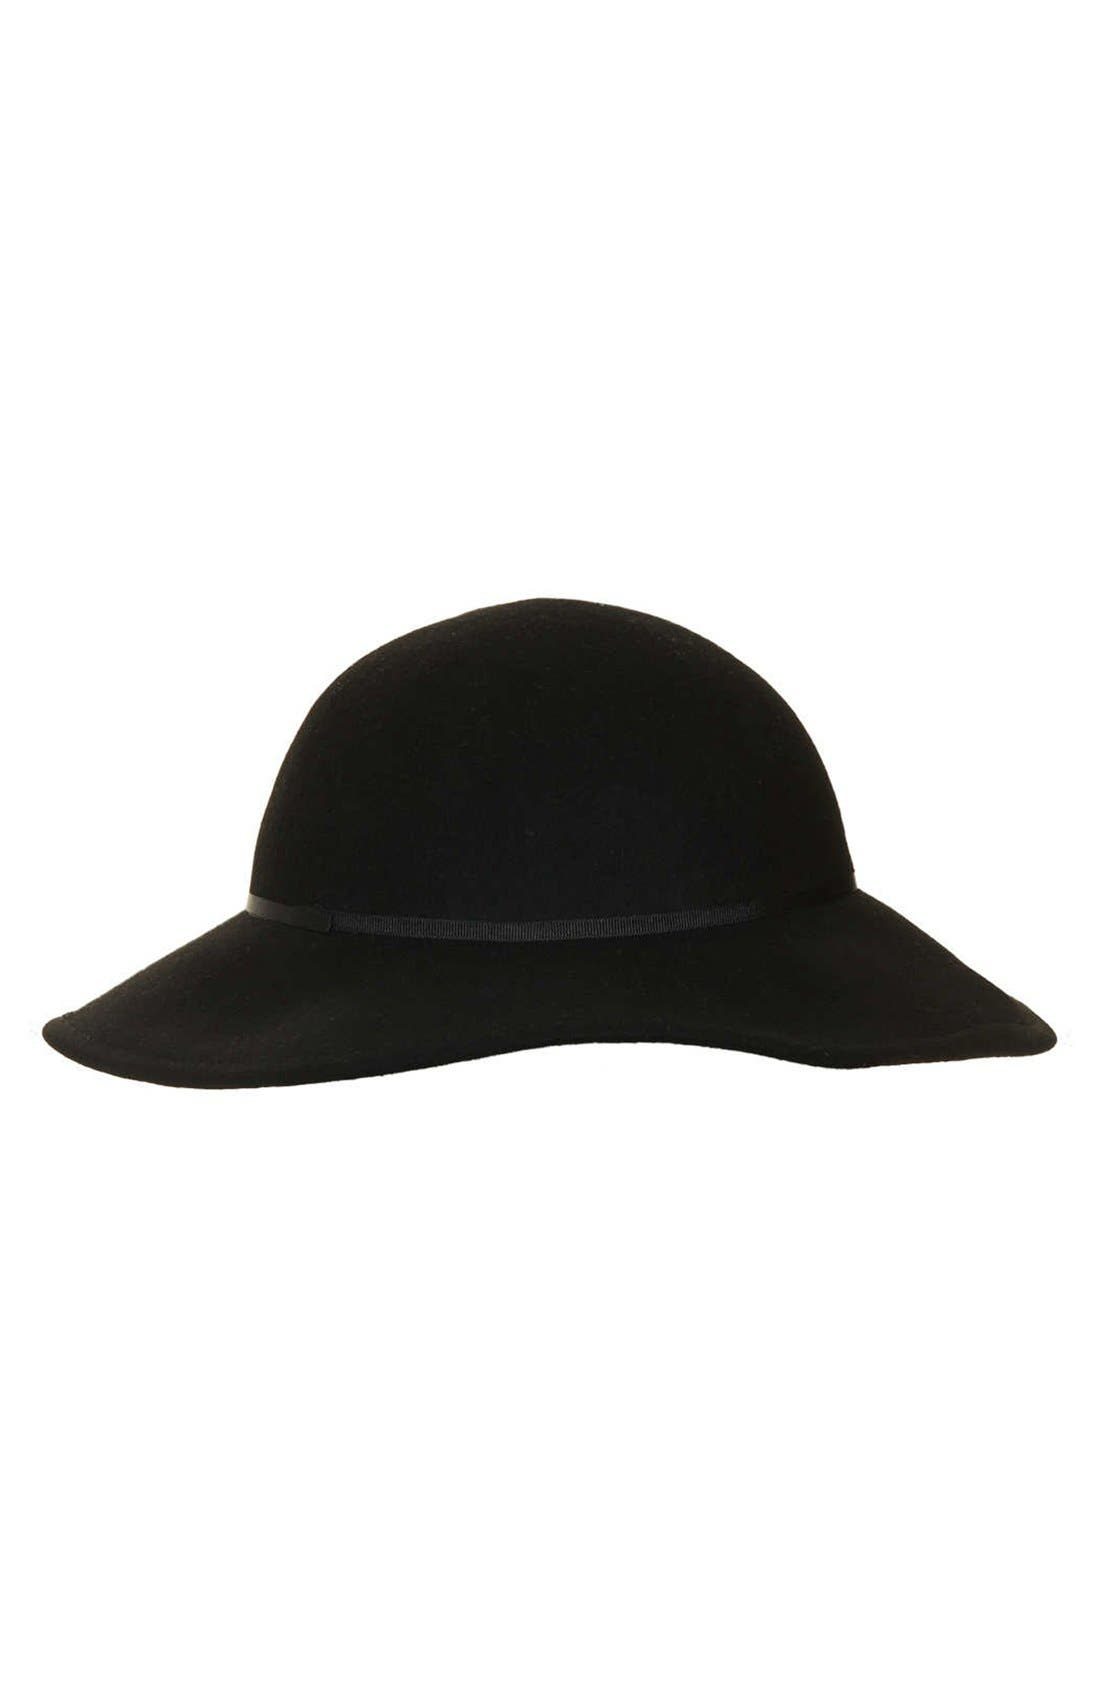 Alternate Image 1 Selected - Topshop 'Beekeeper' Felt Hat